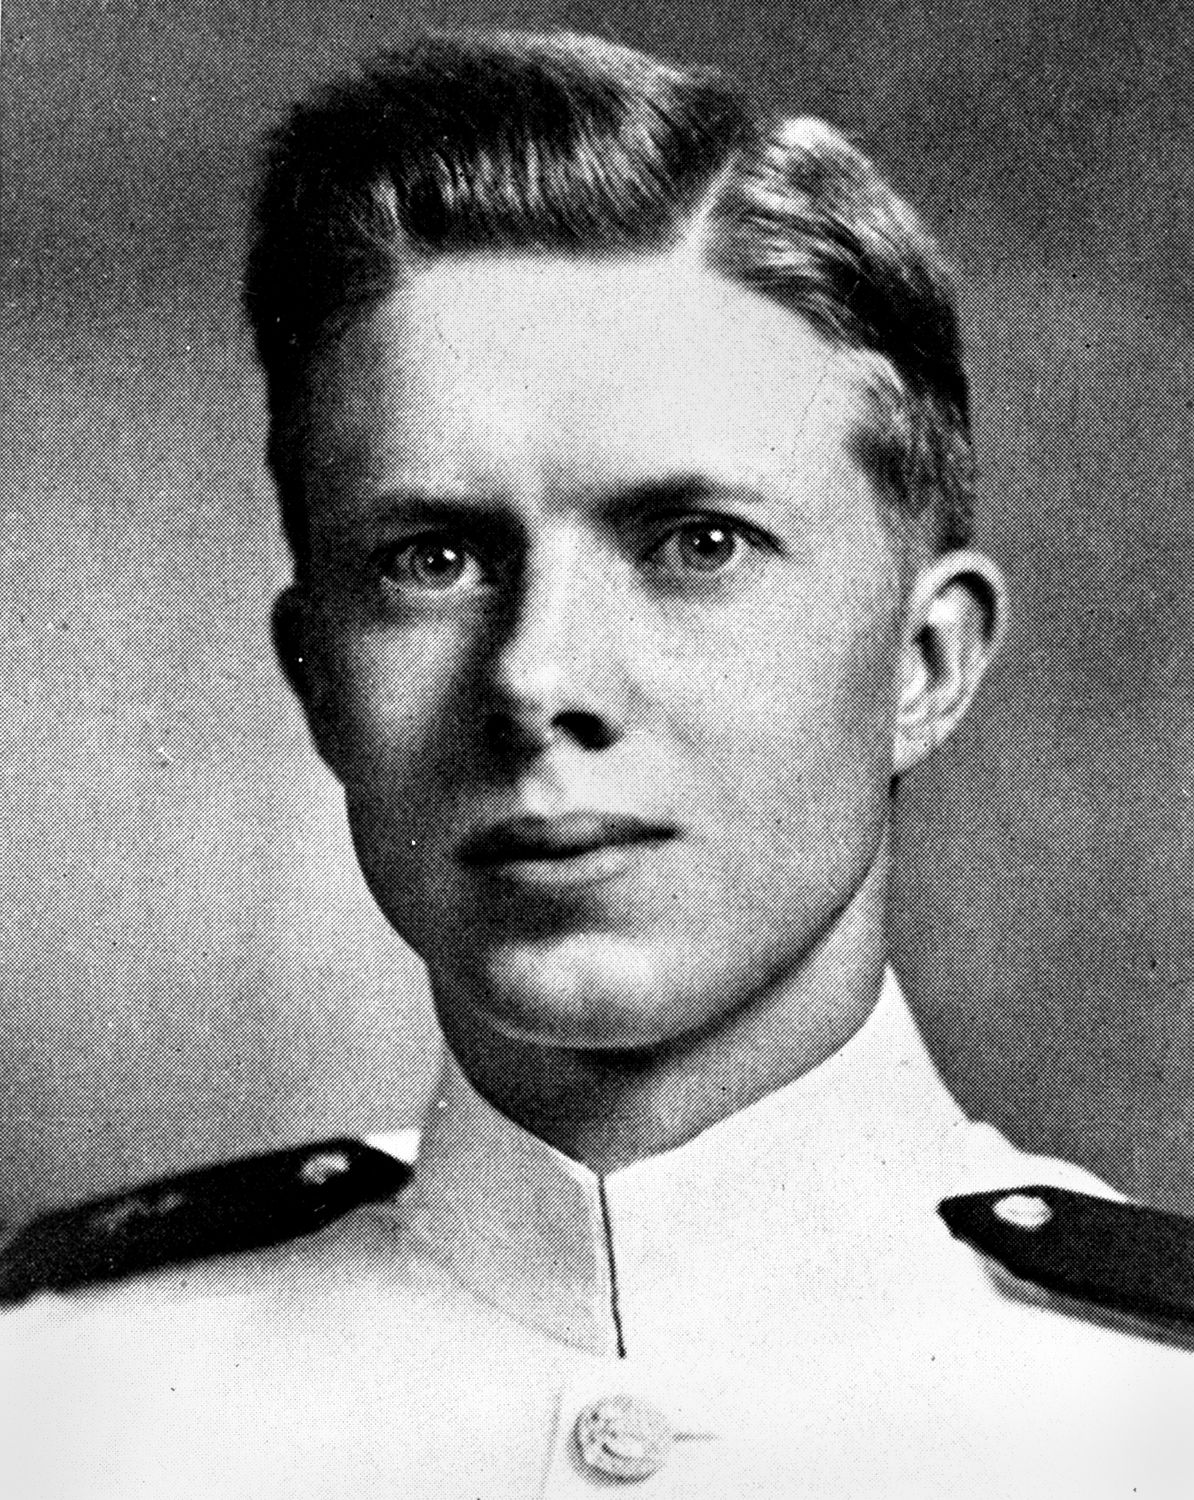 the life and presidency of jimmy carter 1924 -- jimmy carter was born on october 1, 1924 to the parents of earl and lillian carter in the small town of plains 1928 -- earl carter bought a 350 acre farm 3.